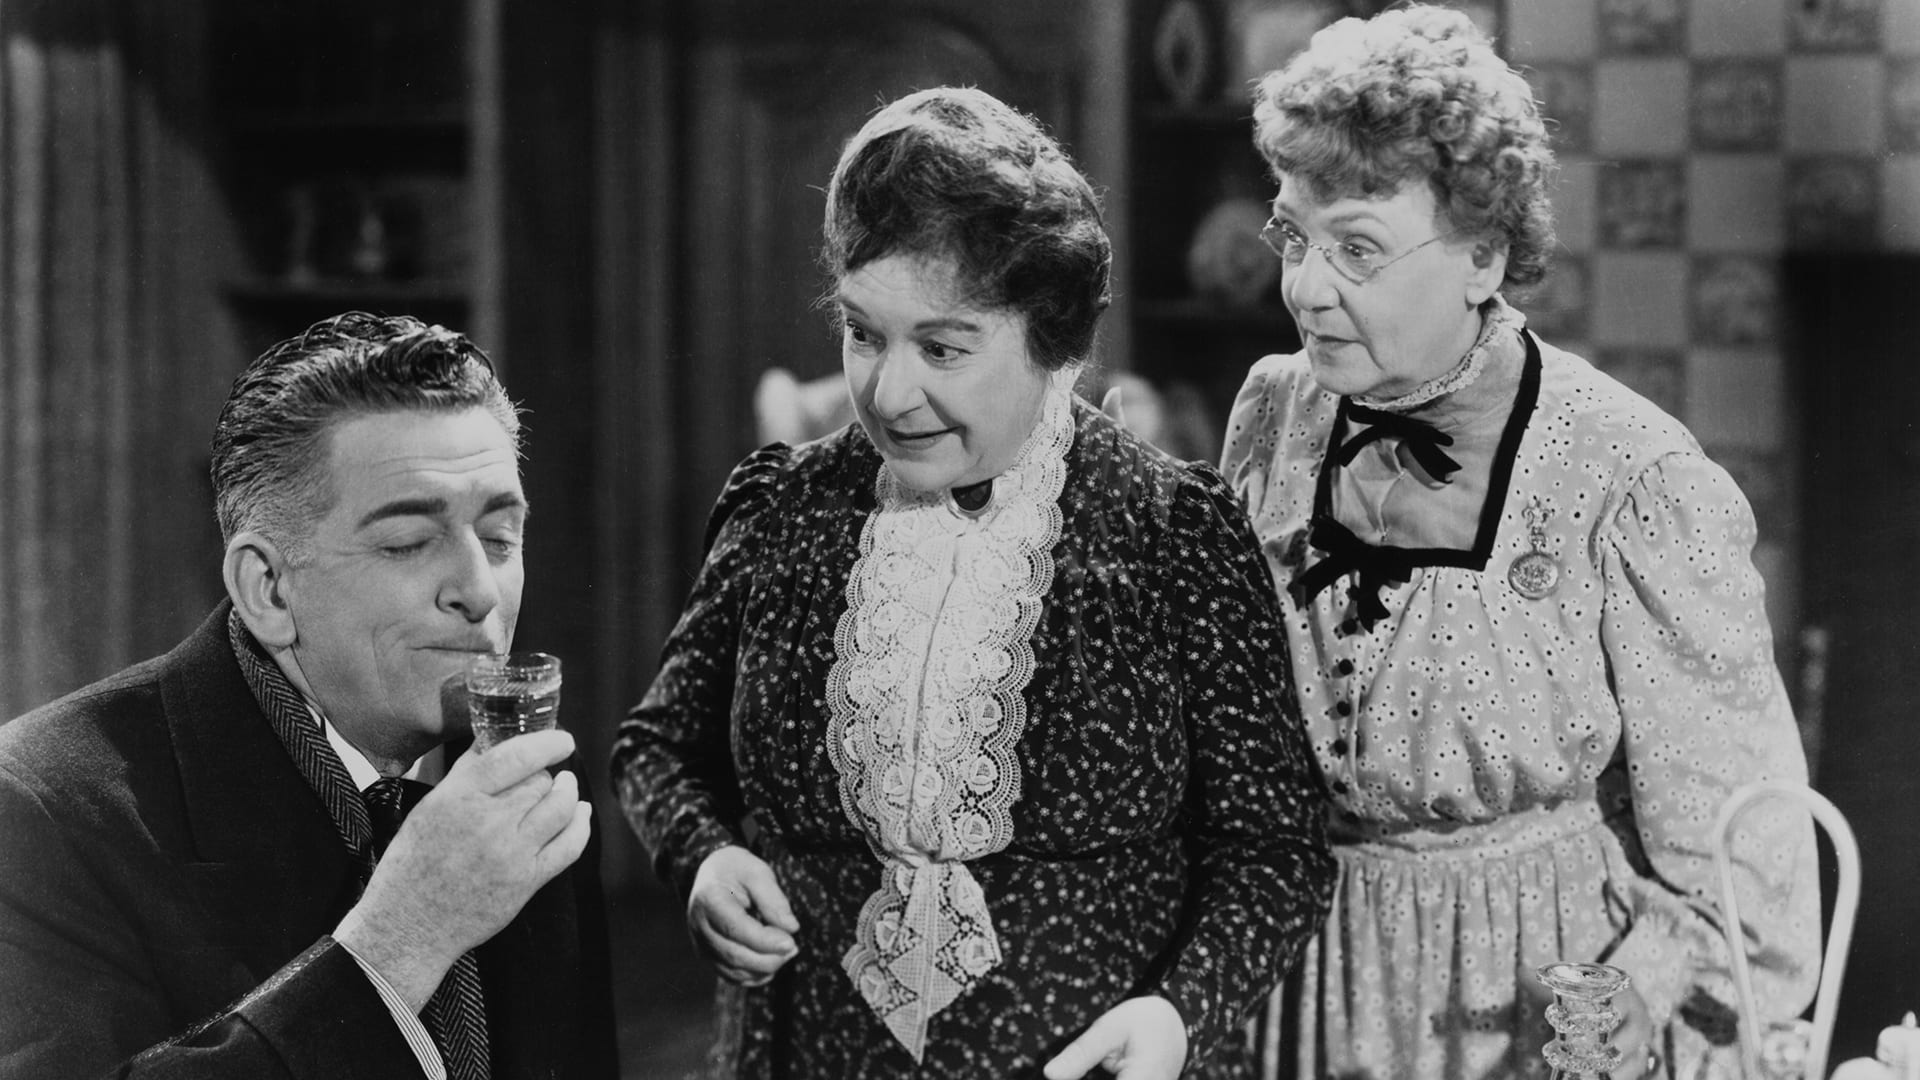 an analysis of arsenic and old lace a movie Characters: arsenic and old lace abby brewster: a darling lady in her sixties who poisons elderly men abby is the sister of martha and an aunt to teddy.